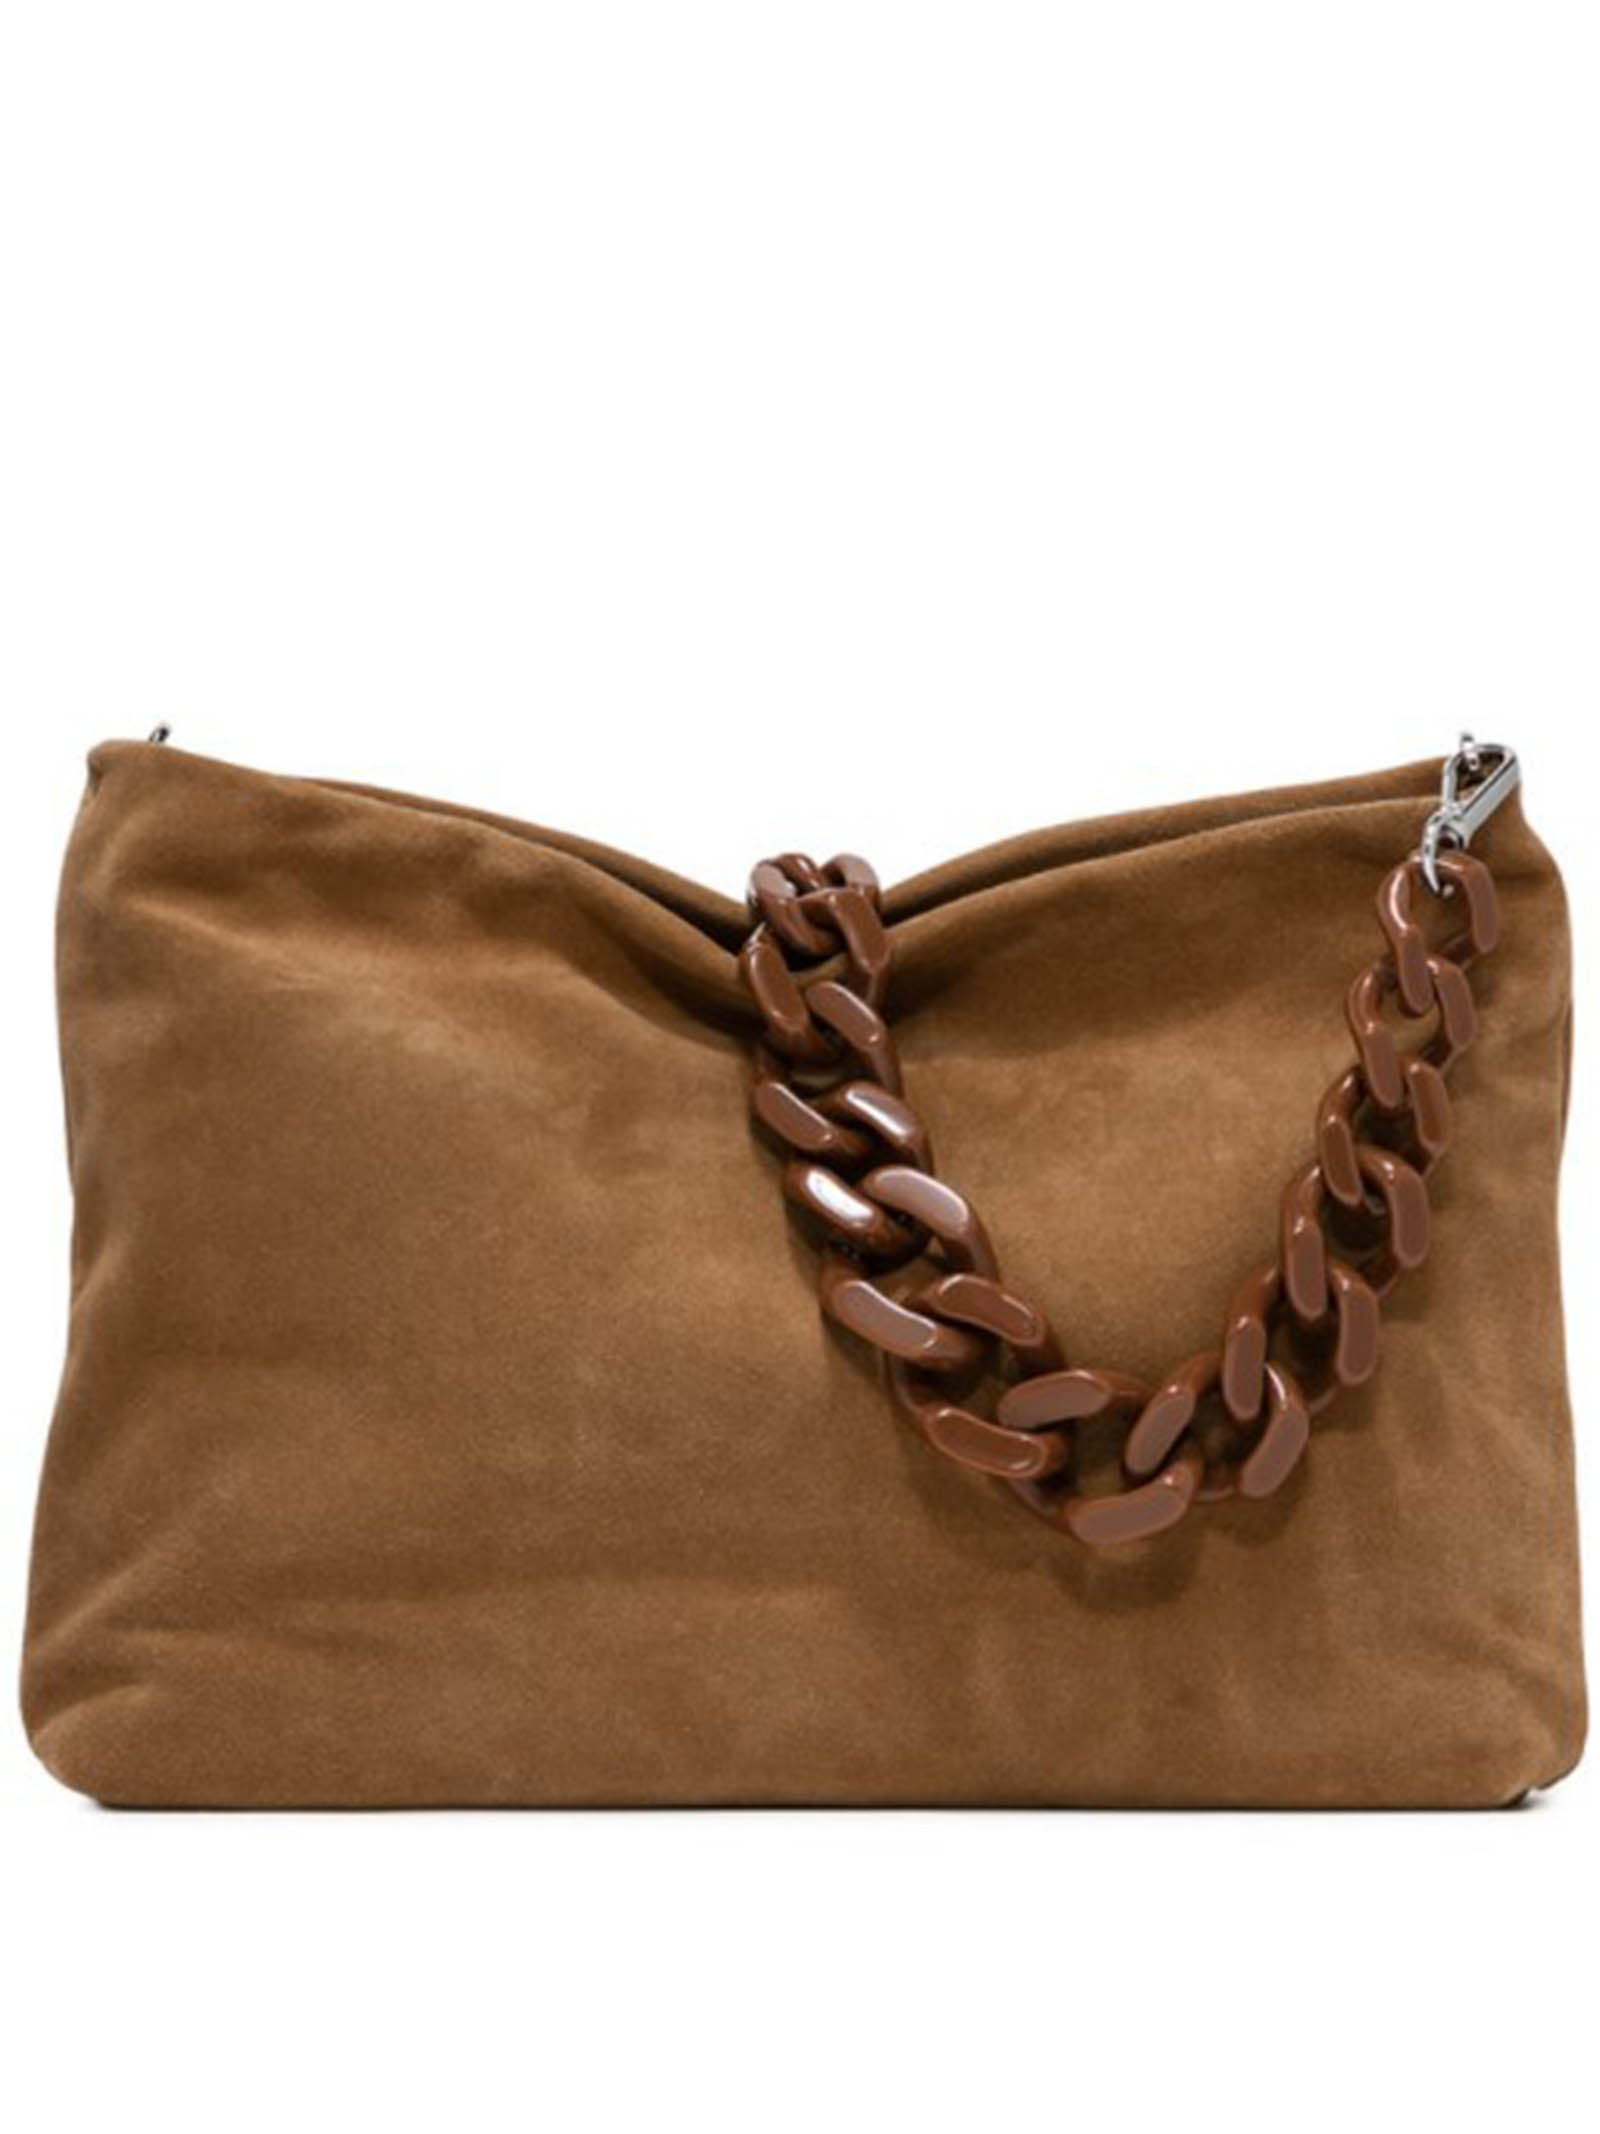 Woman's Shoulder Bag Maxi Brenda In Tan Suede With Gold And Adjustable And Detachable Leather Cross-body Strap Gianni Chiarini   Bags and backpacks   BS8266206